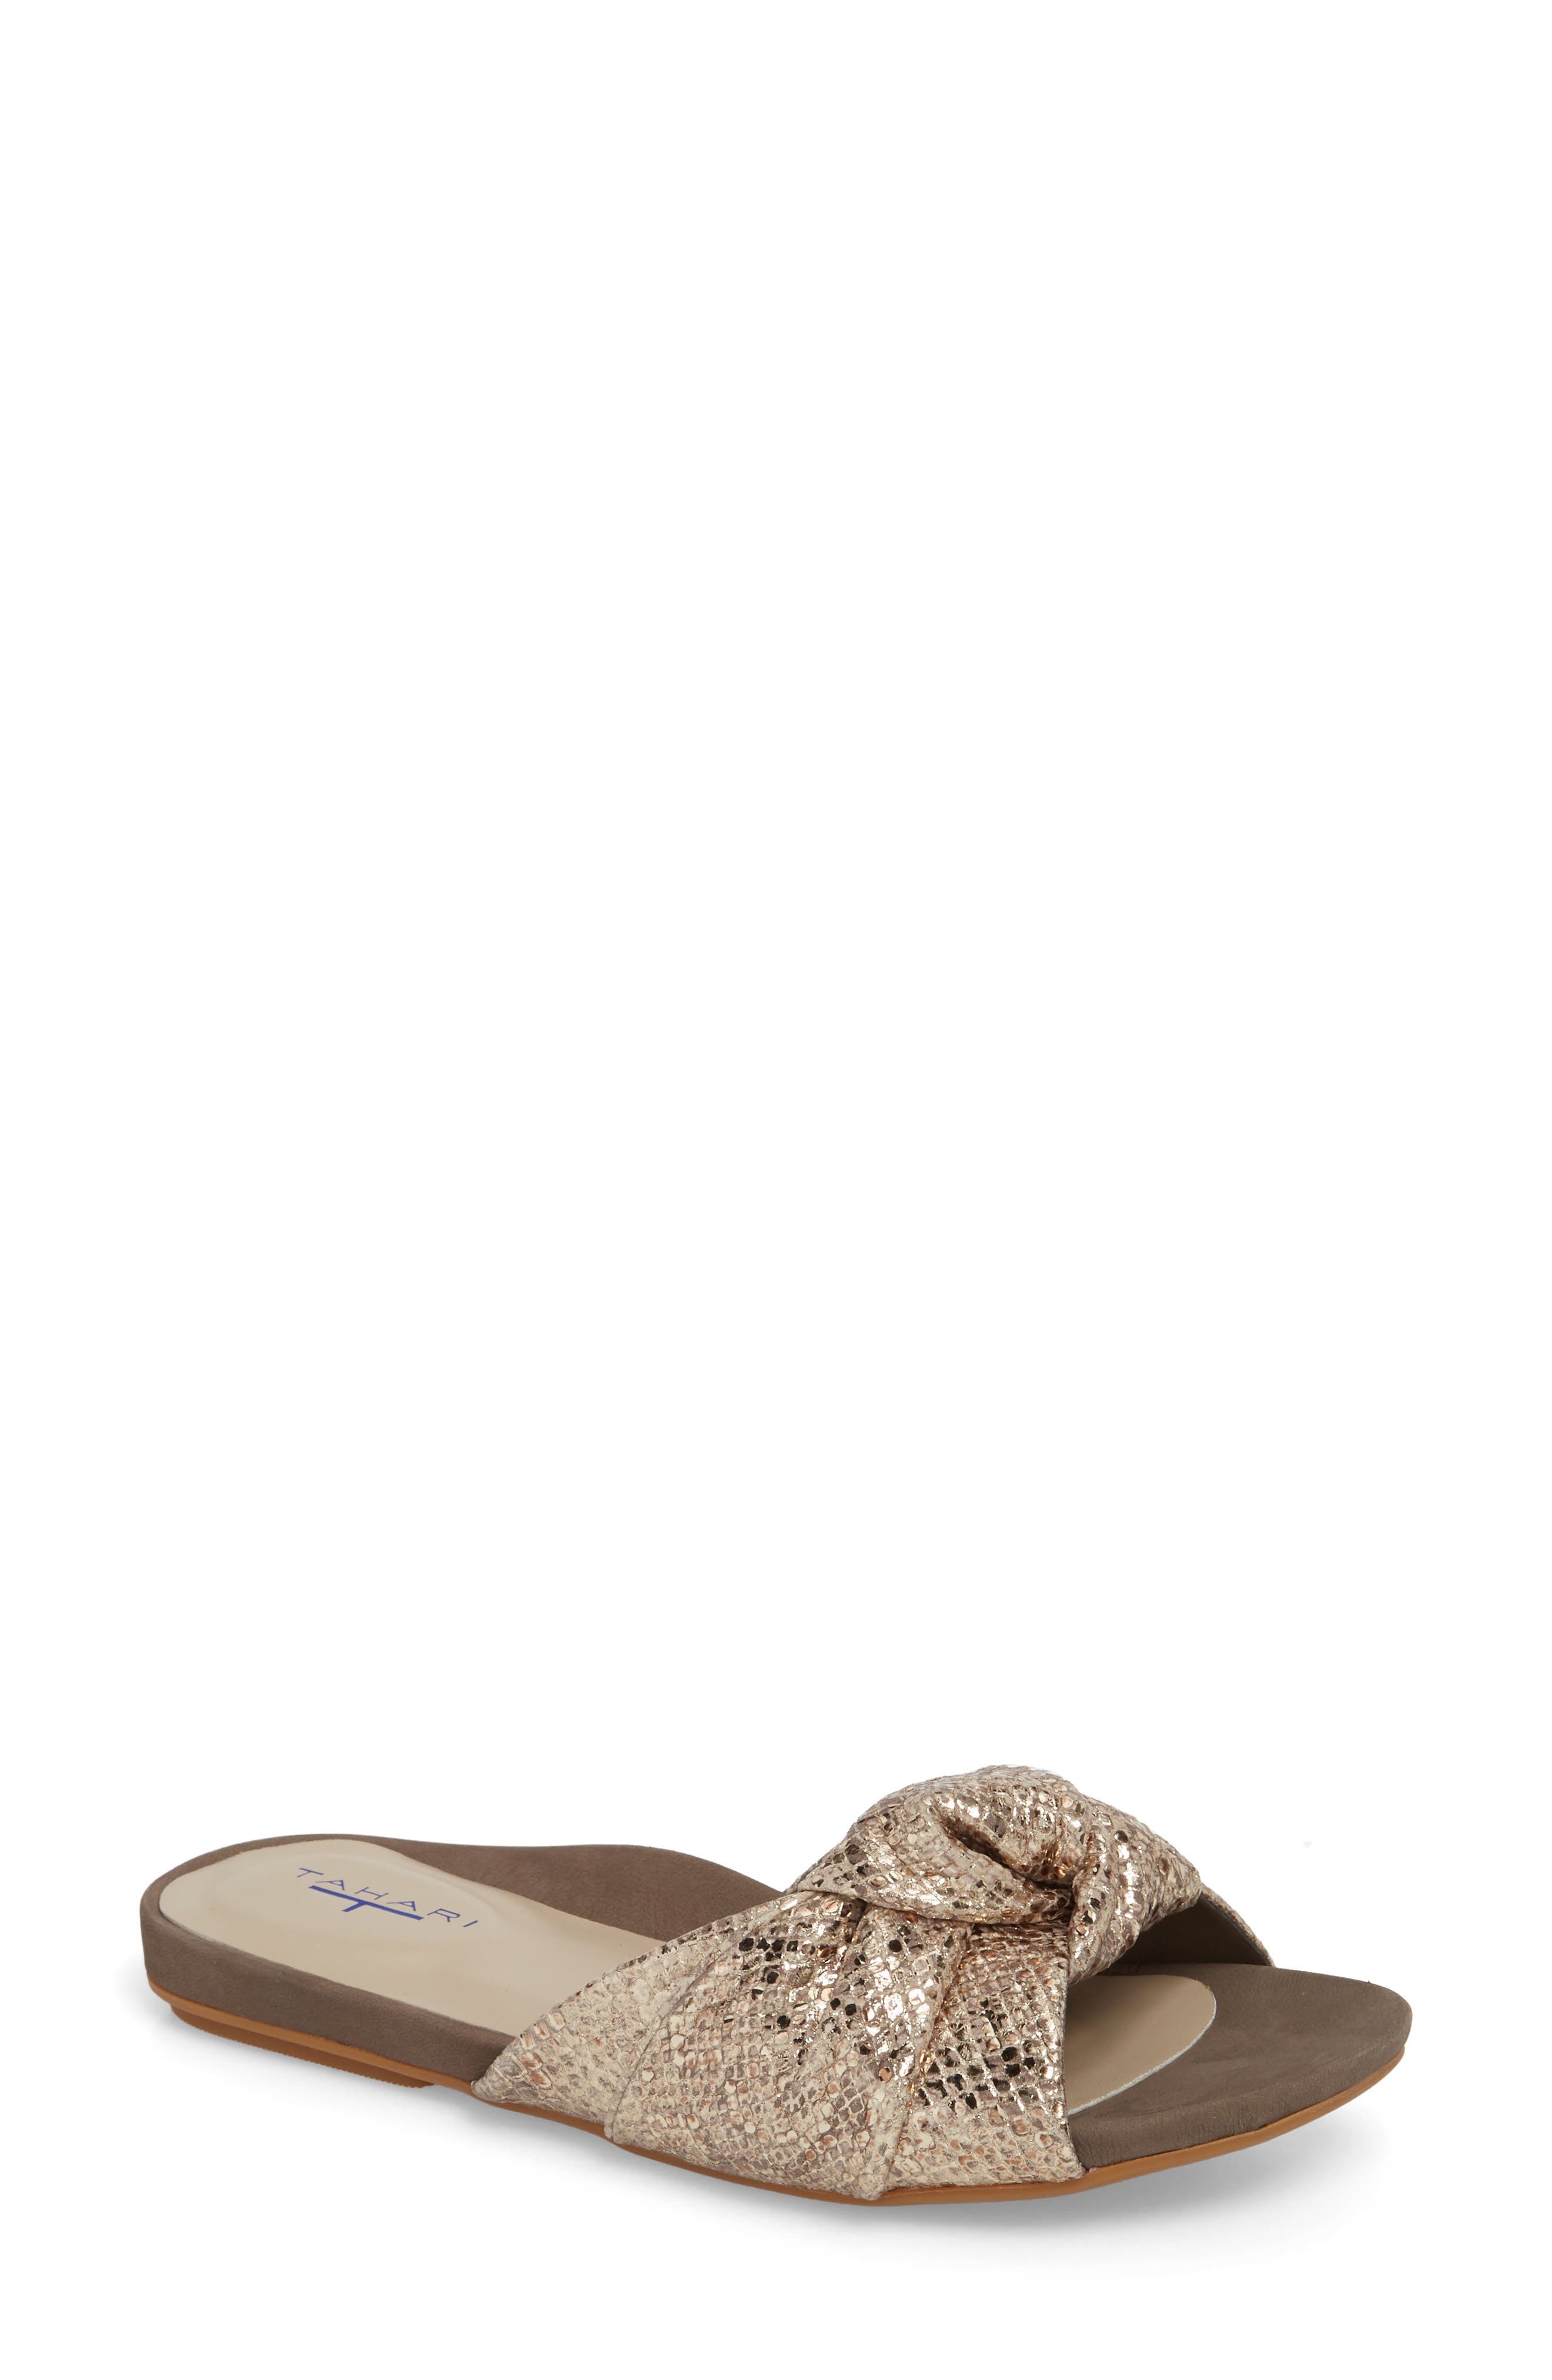 Lauren Slide Sandal,                             Main thumbnail 1, color,                             Taupe-Gold Suede